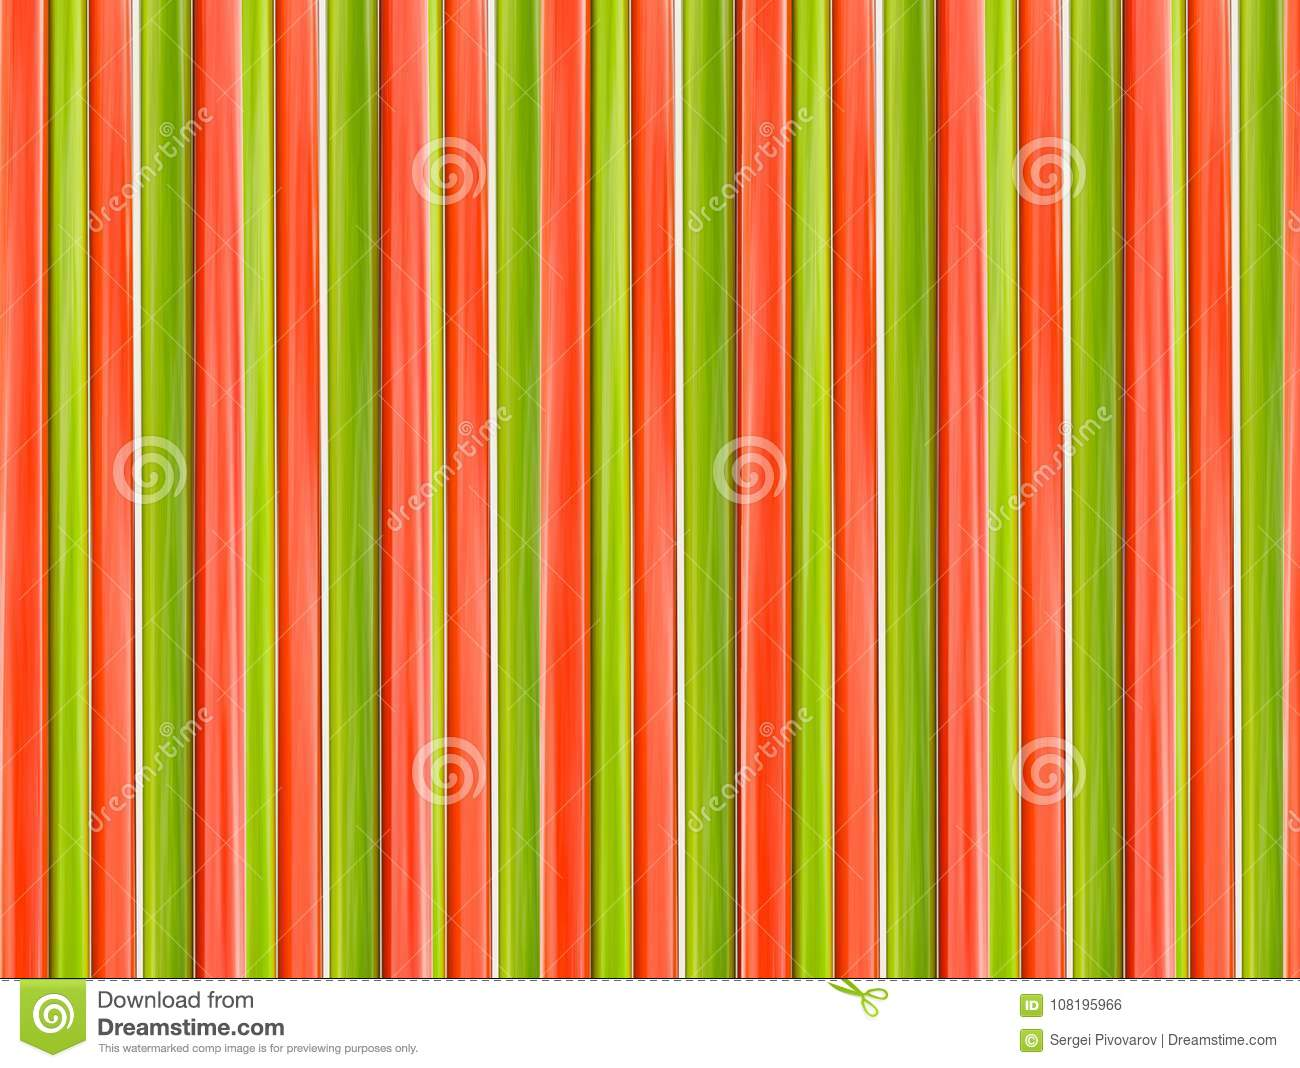 Red green wooden texture vertical lines abstract background symmetrical